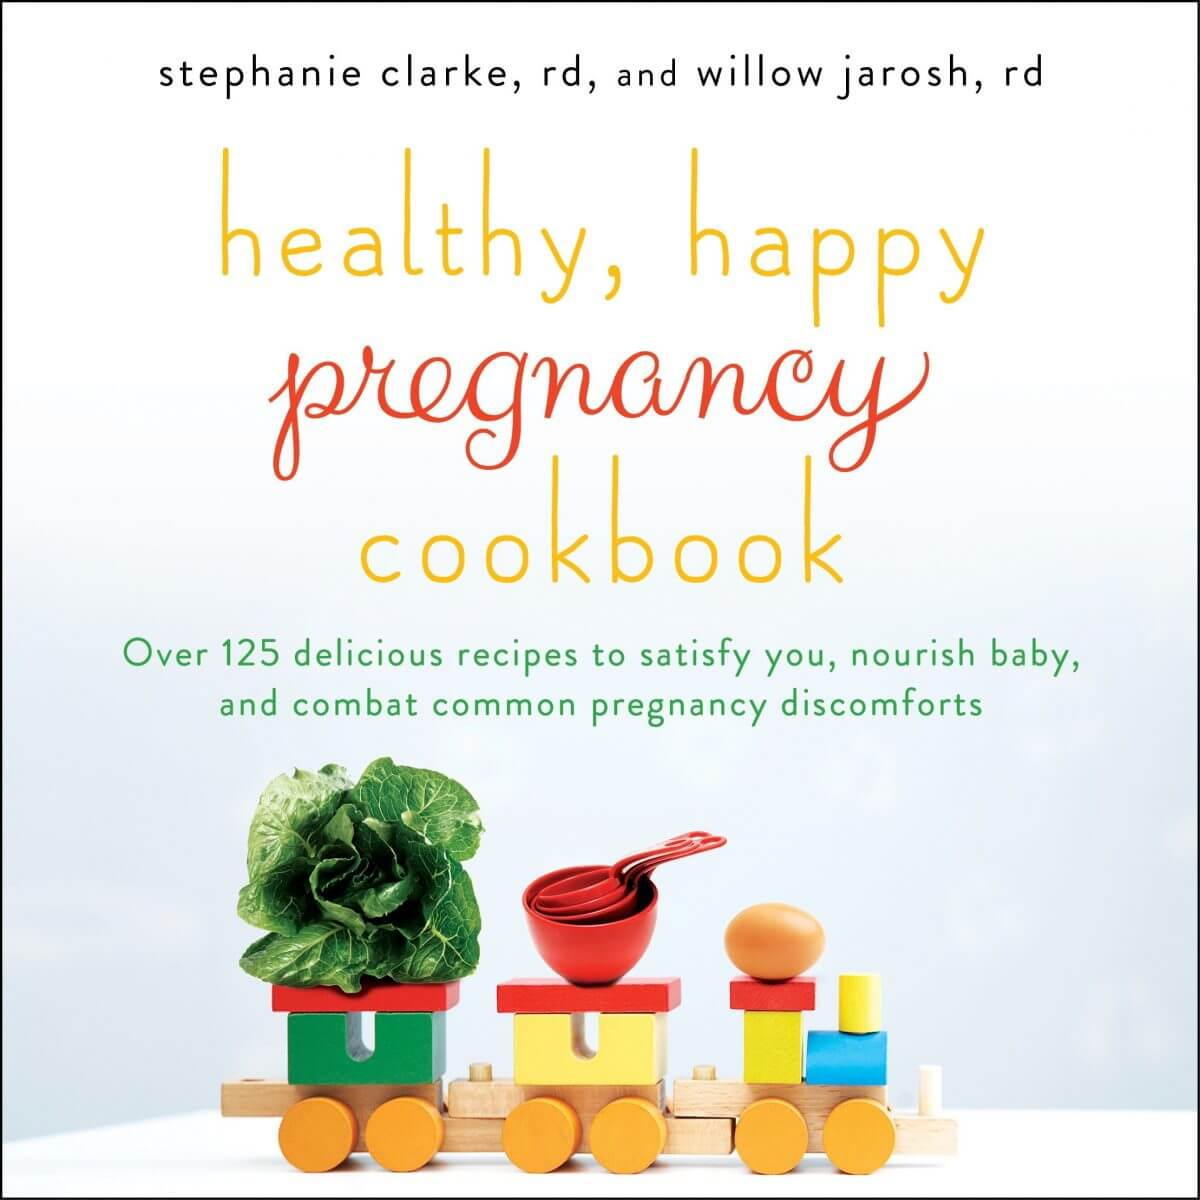 Plant chat stephanie clarke and willow jarosh authors of healthy this informative book features recipes for wholesome unprocessed meals and snacks in addition it contains nutritional breakdowns and tips for the best forumfinder Choice Image